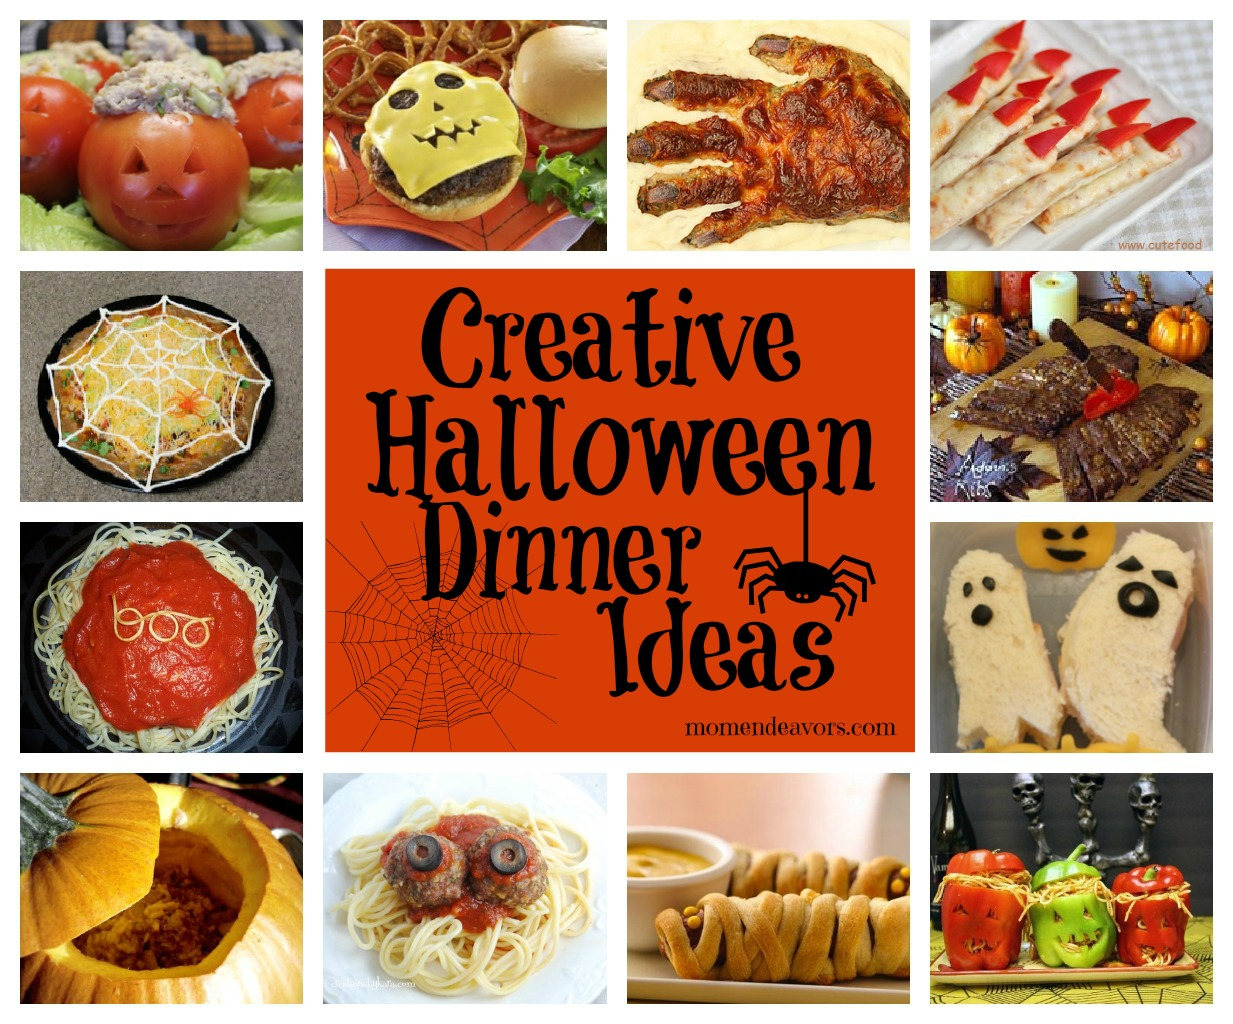 15 creative halloween dinner ideas halloween dinner ideas - Gory Halloween Food Ideas